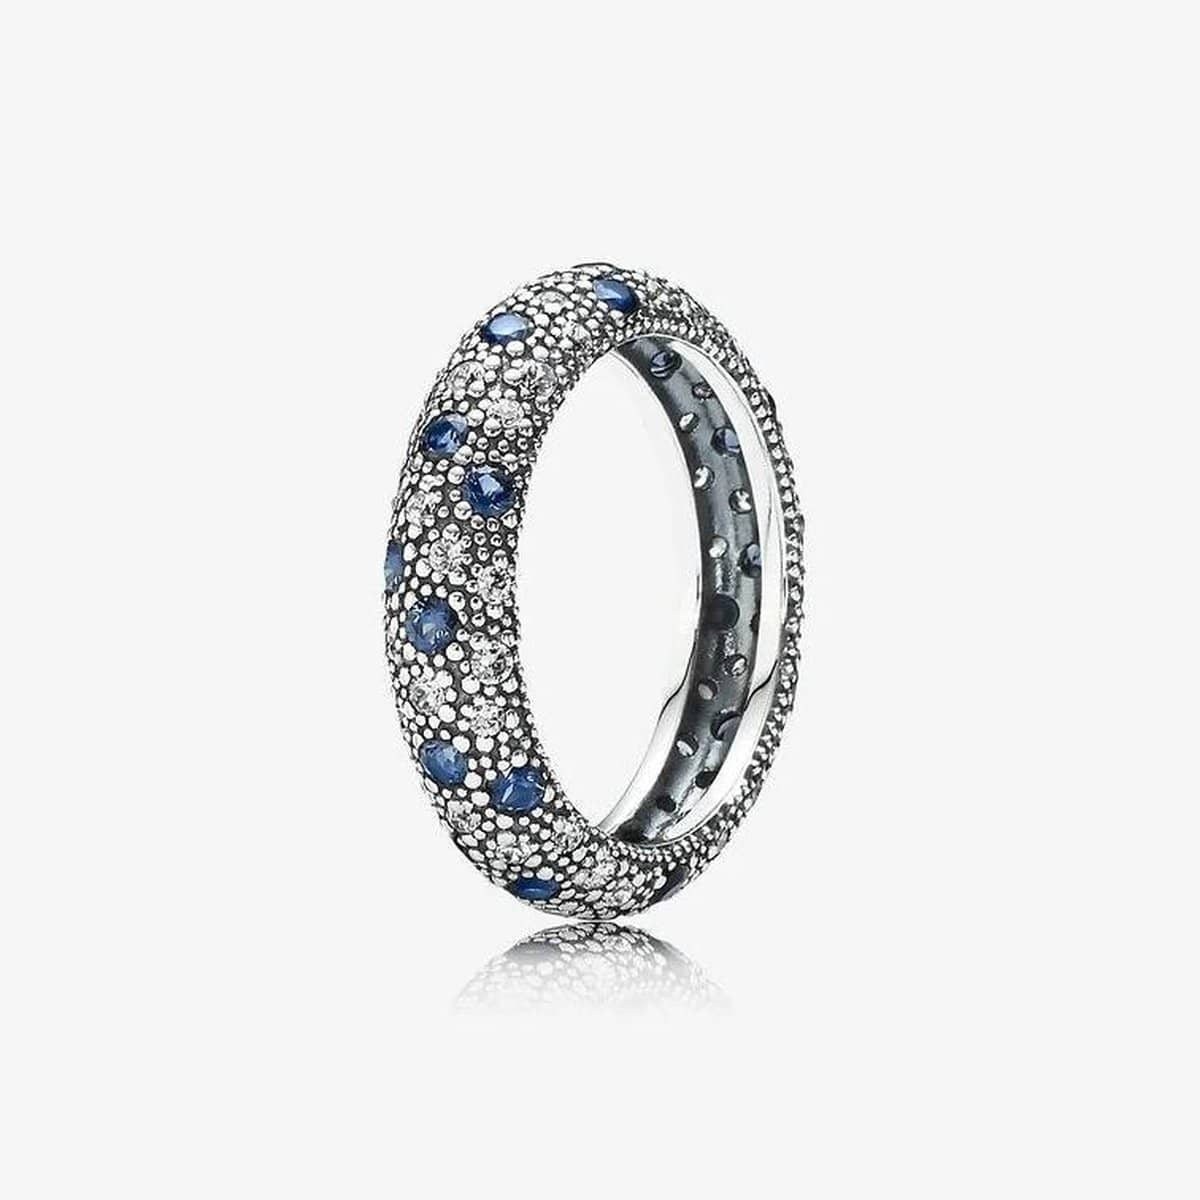 Cosmic Stars Midnight Blue Crystal & Clear Cubic Zirconia Ring - 190915NBC-Pandora-Renee Taylor Gallery